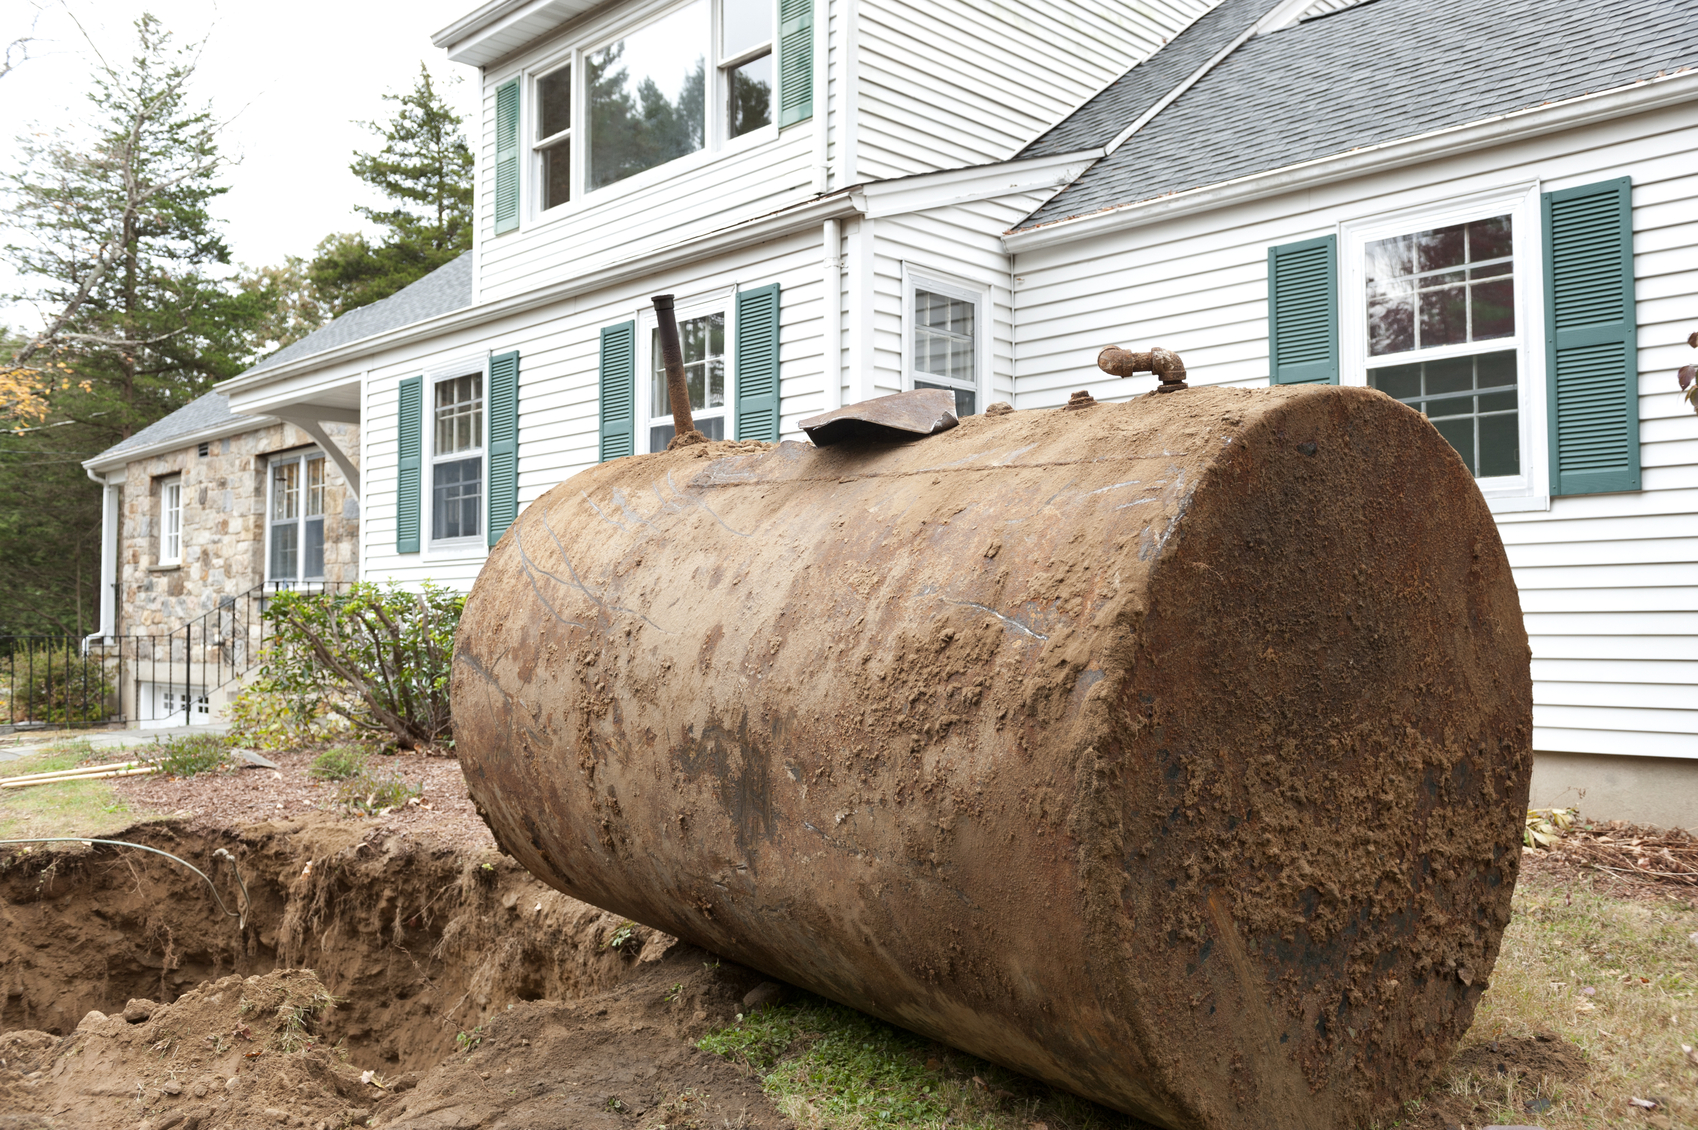 An old rusty underground oil tank in front of a residential house.